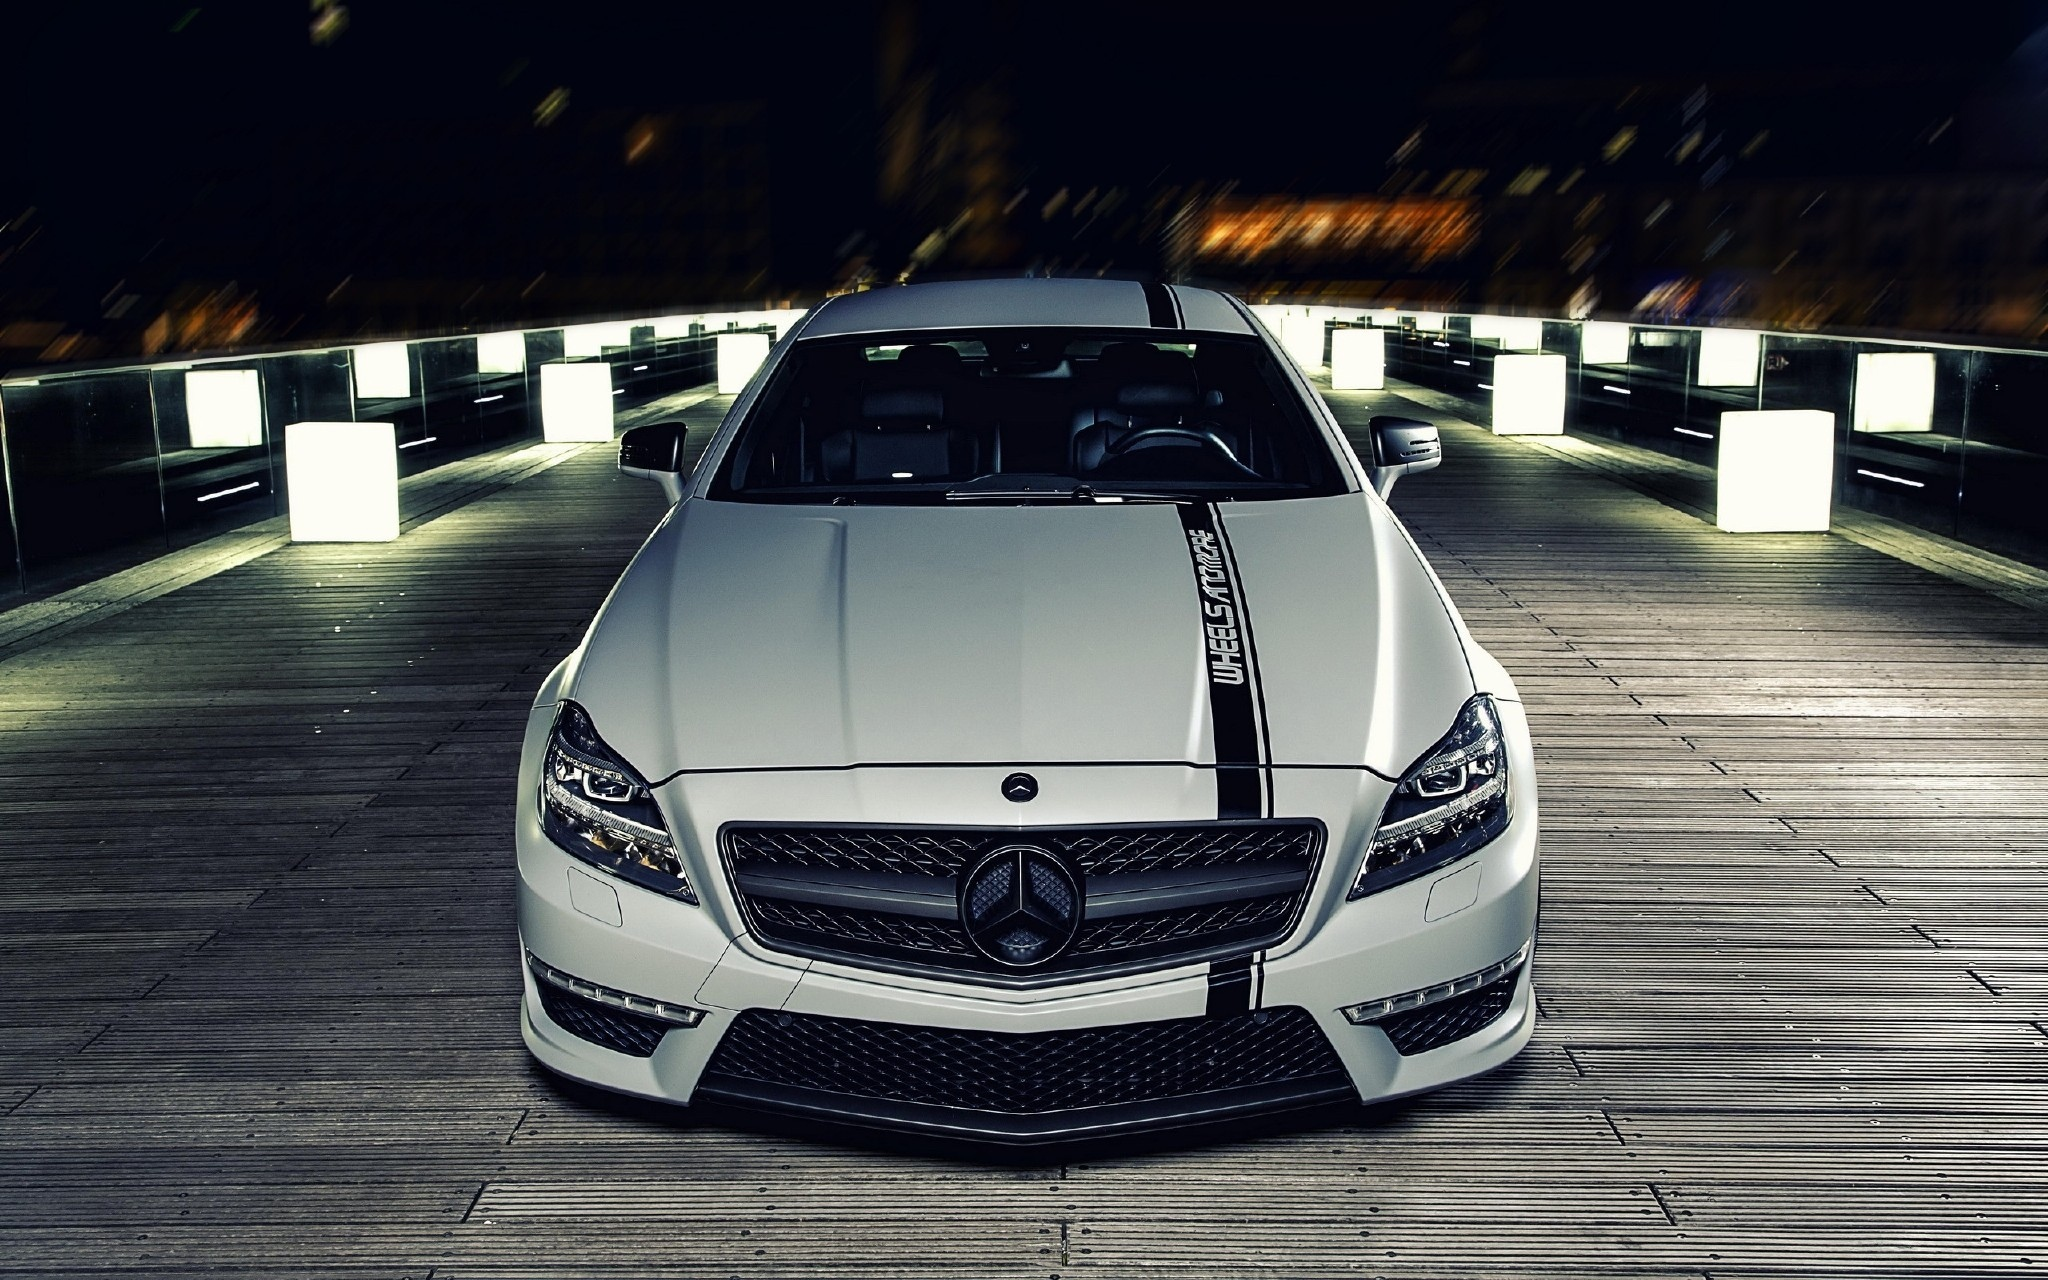 Mercedes Benz Wallpapers, Pictures, Images